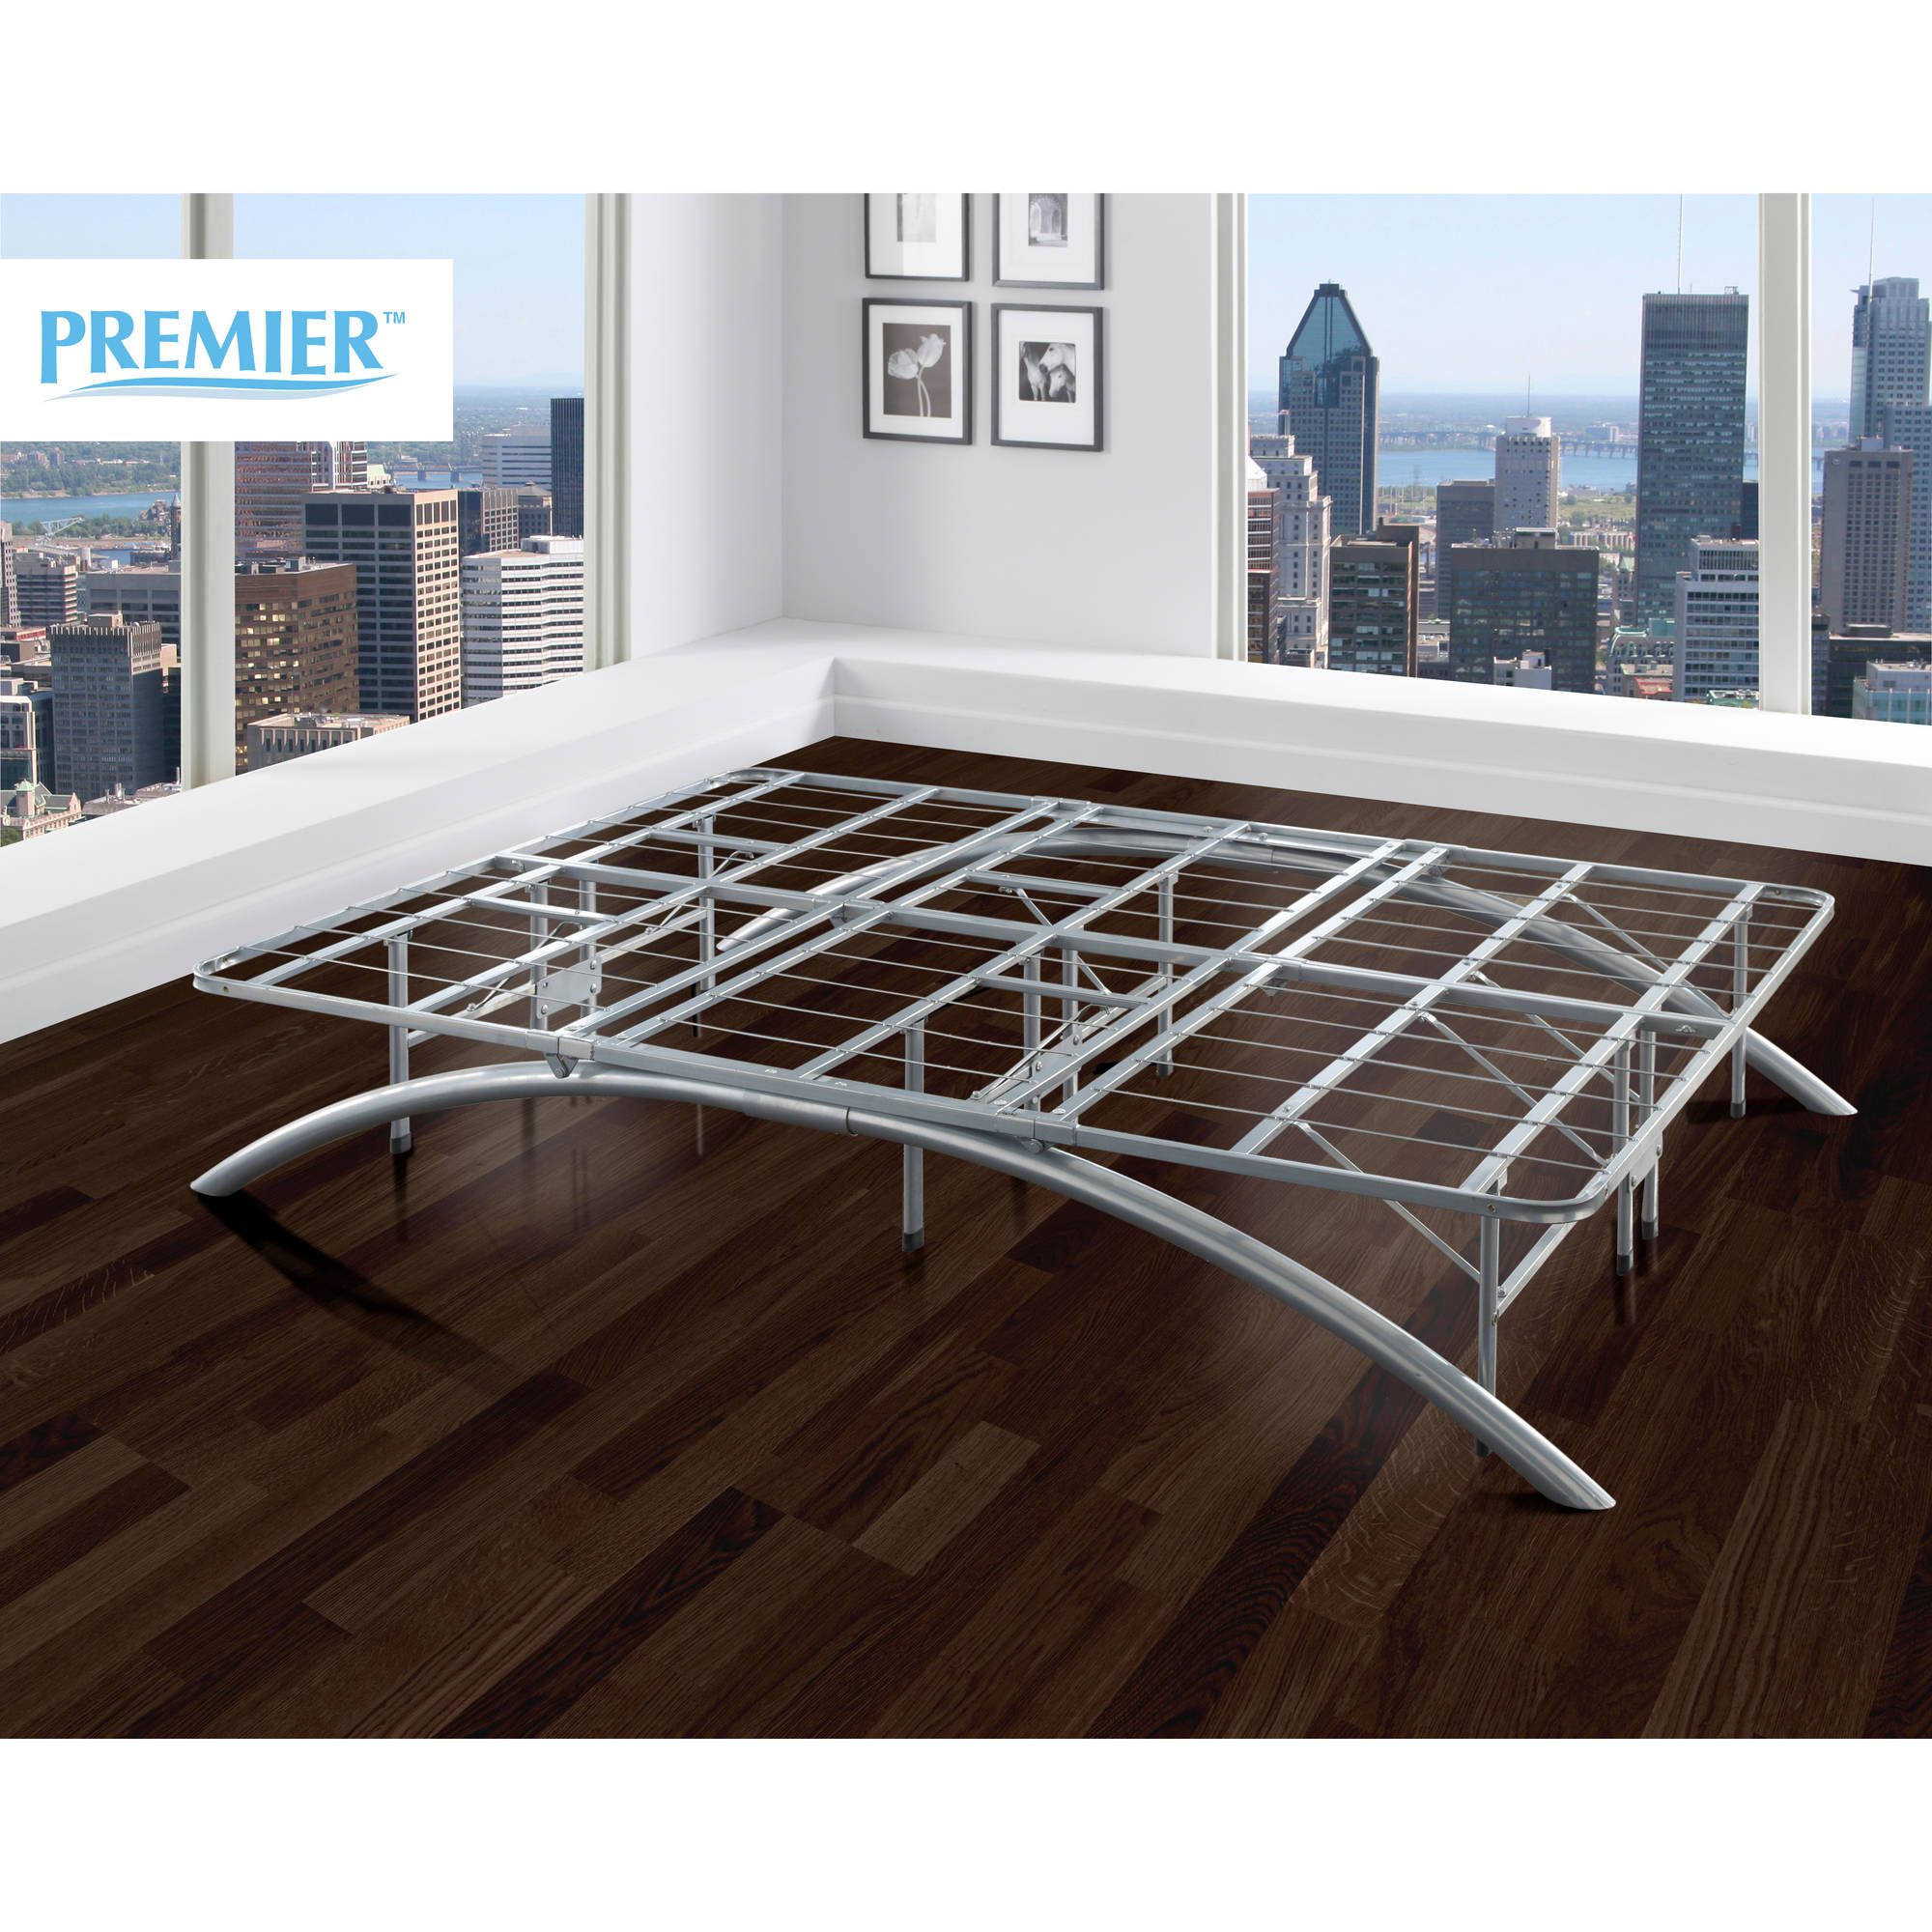 Premier Ellipse Arch Platform Bed Frame, Brushed Silver